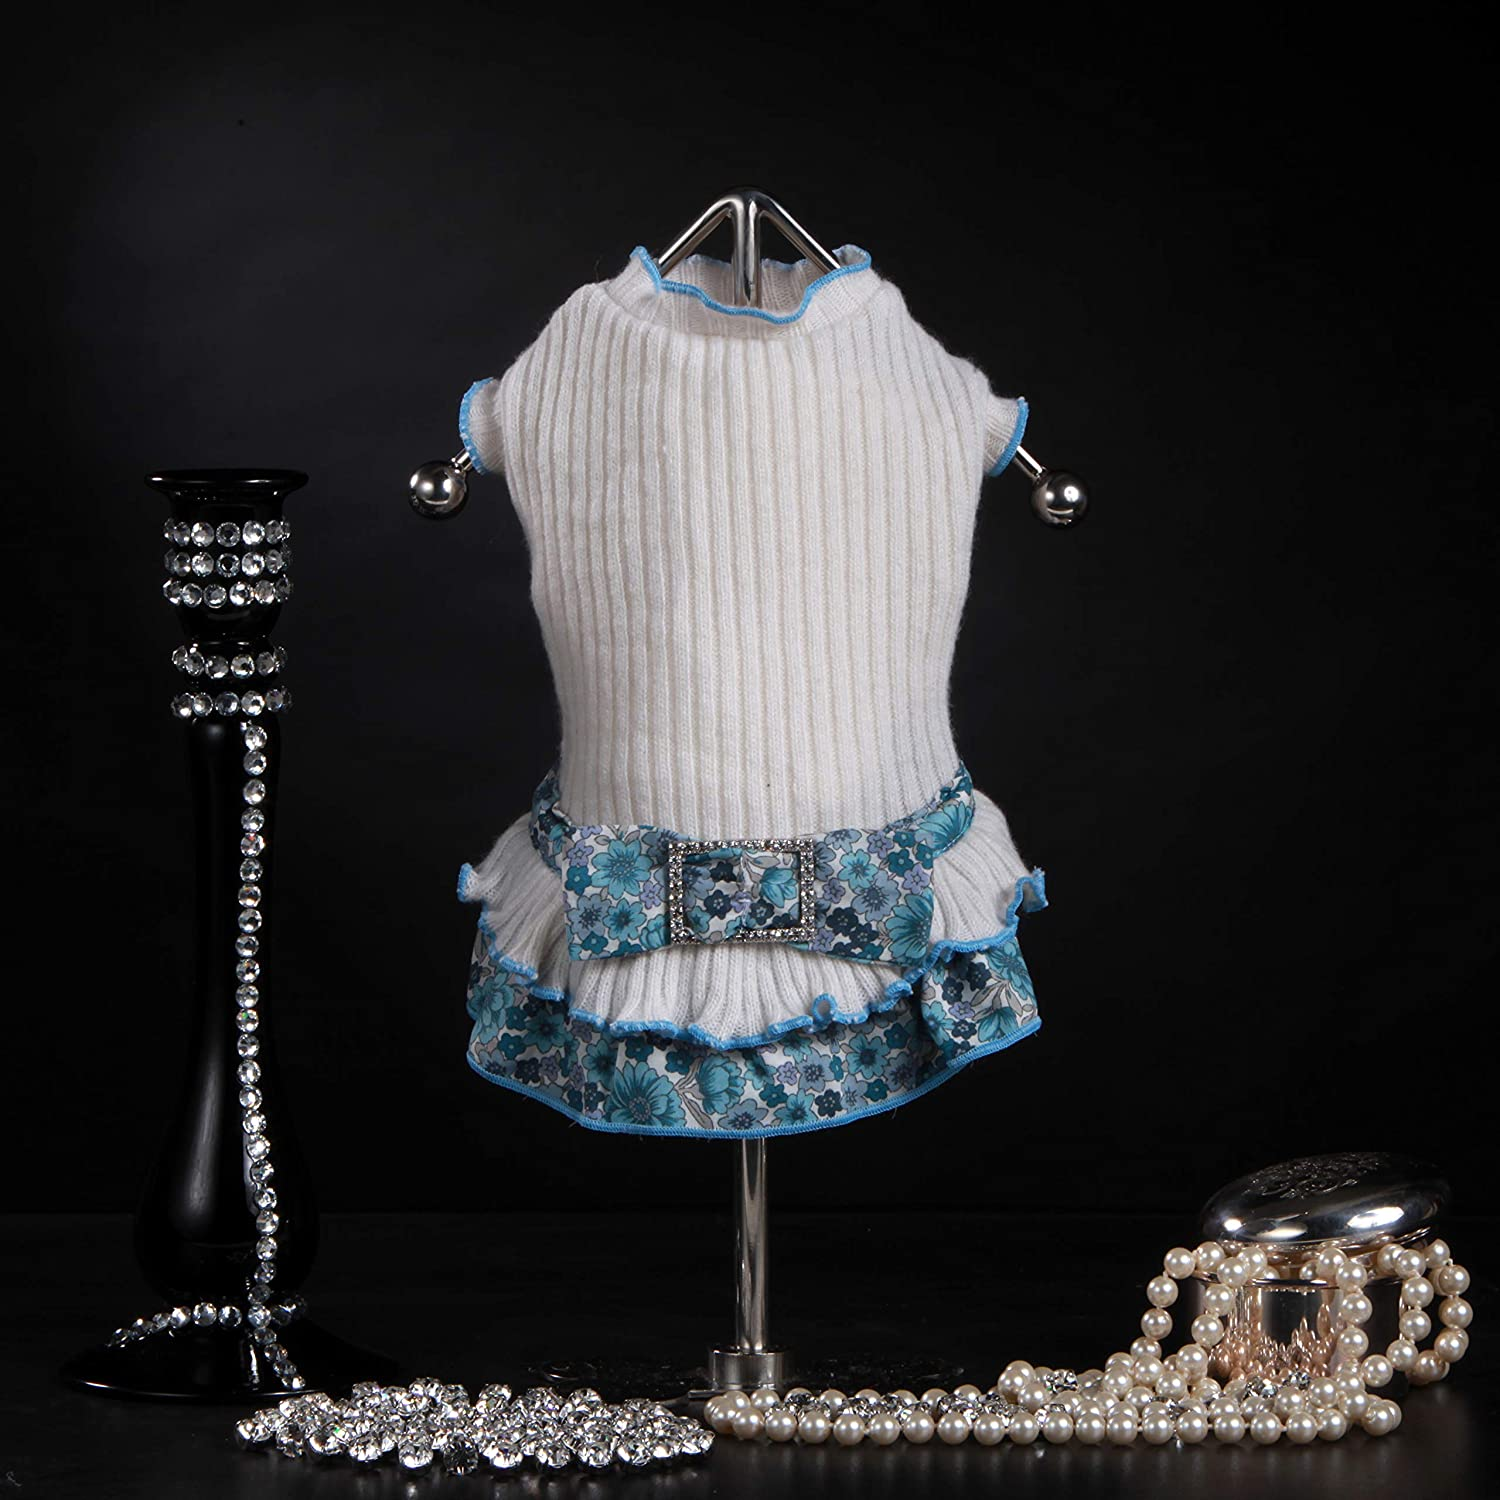 Trilly tutti Brilli Sara Wool Dress with Floral Frill and Bow Brooch White Rhinestones, XS 1 Product